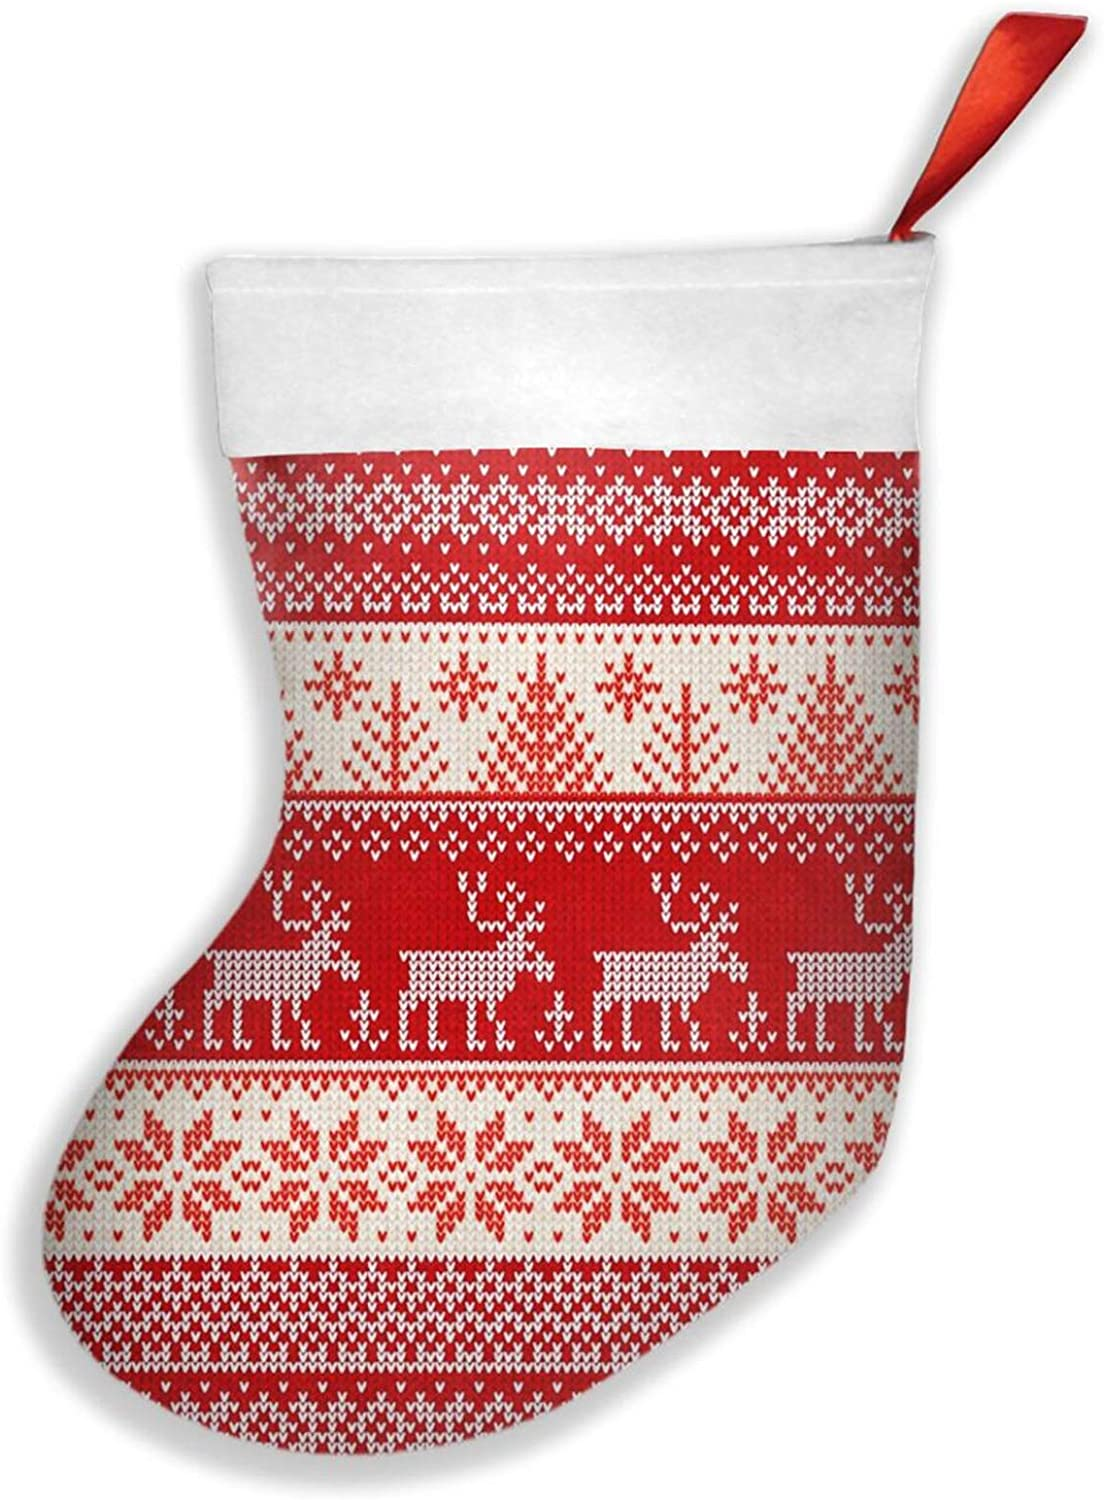 CUICAN Christmas Stockings Gift Bag Sock Christmas Decorations Xmas Ugly Sweater Red Snowflake Deer Hanging Stockings Decoration Holiday Season Party Decor